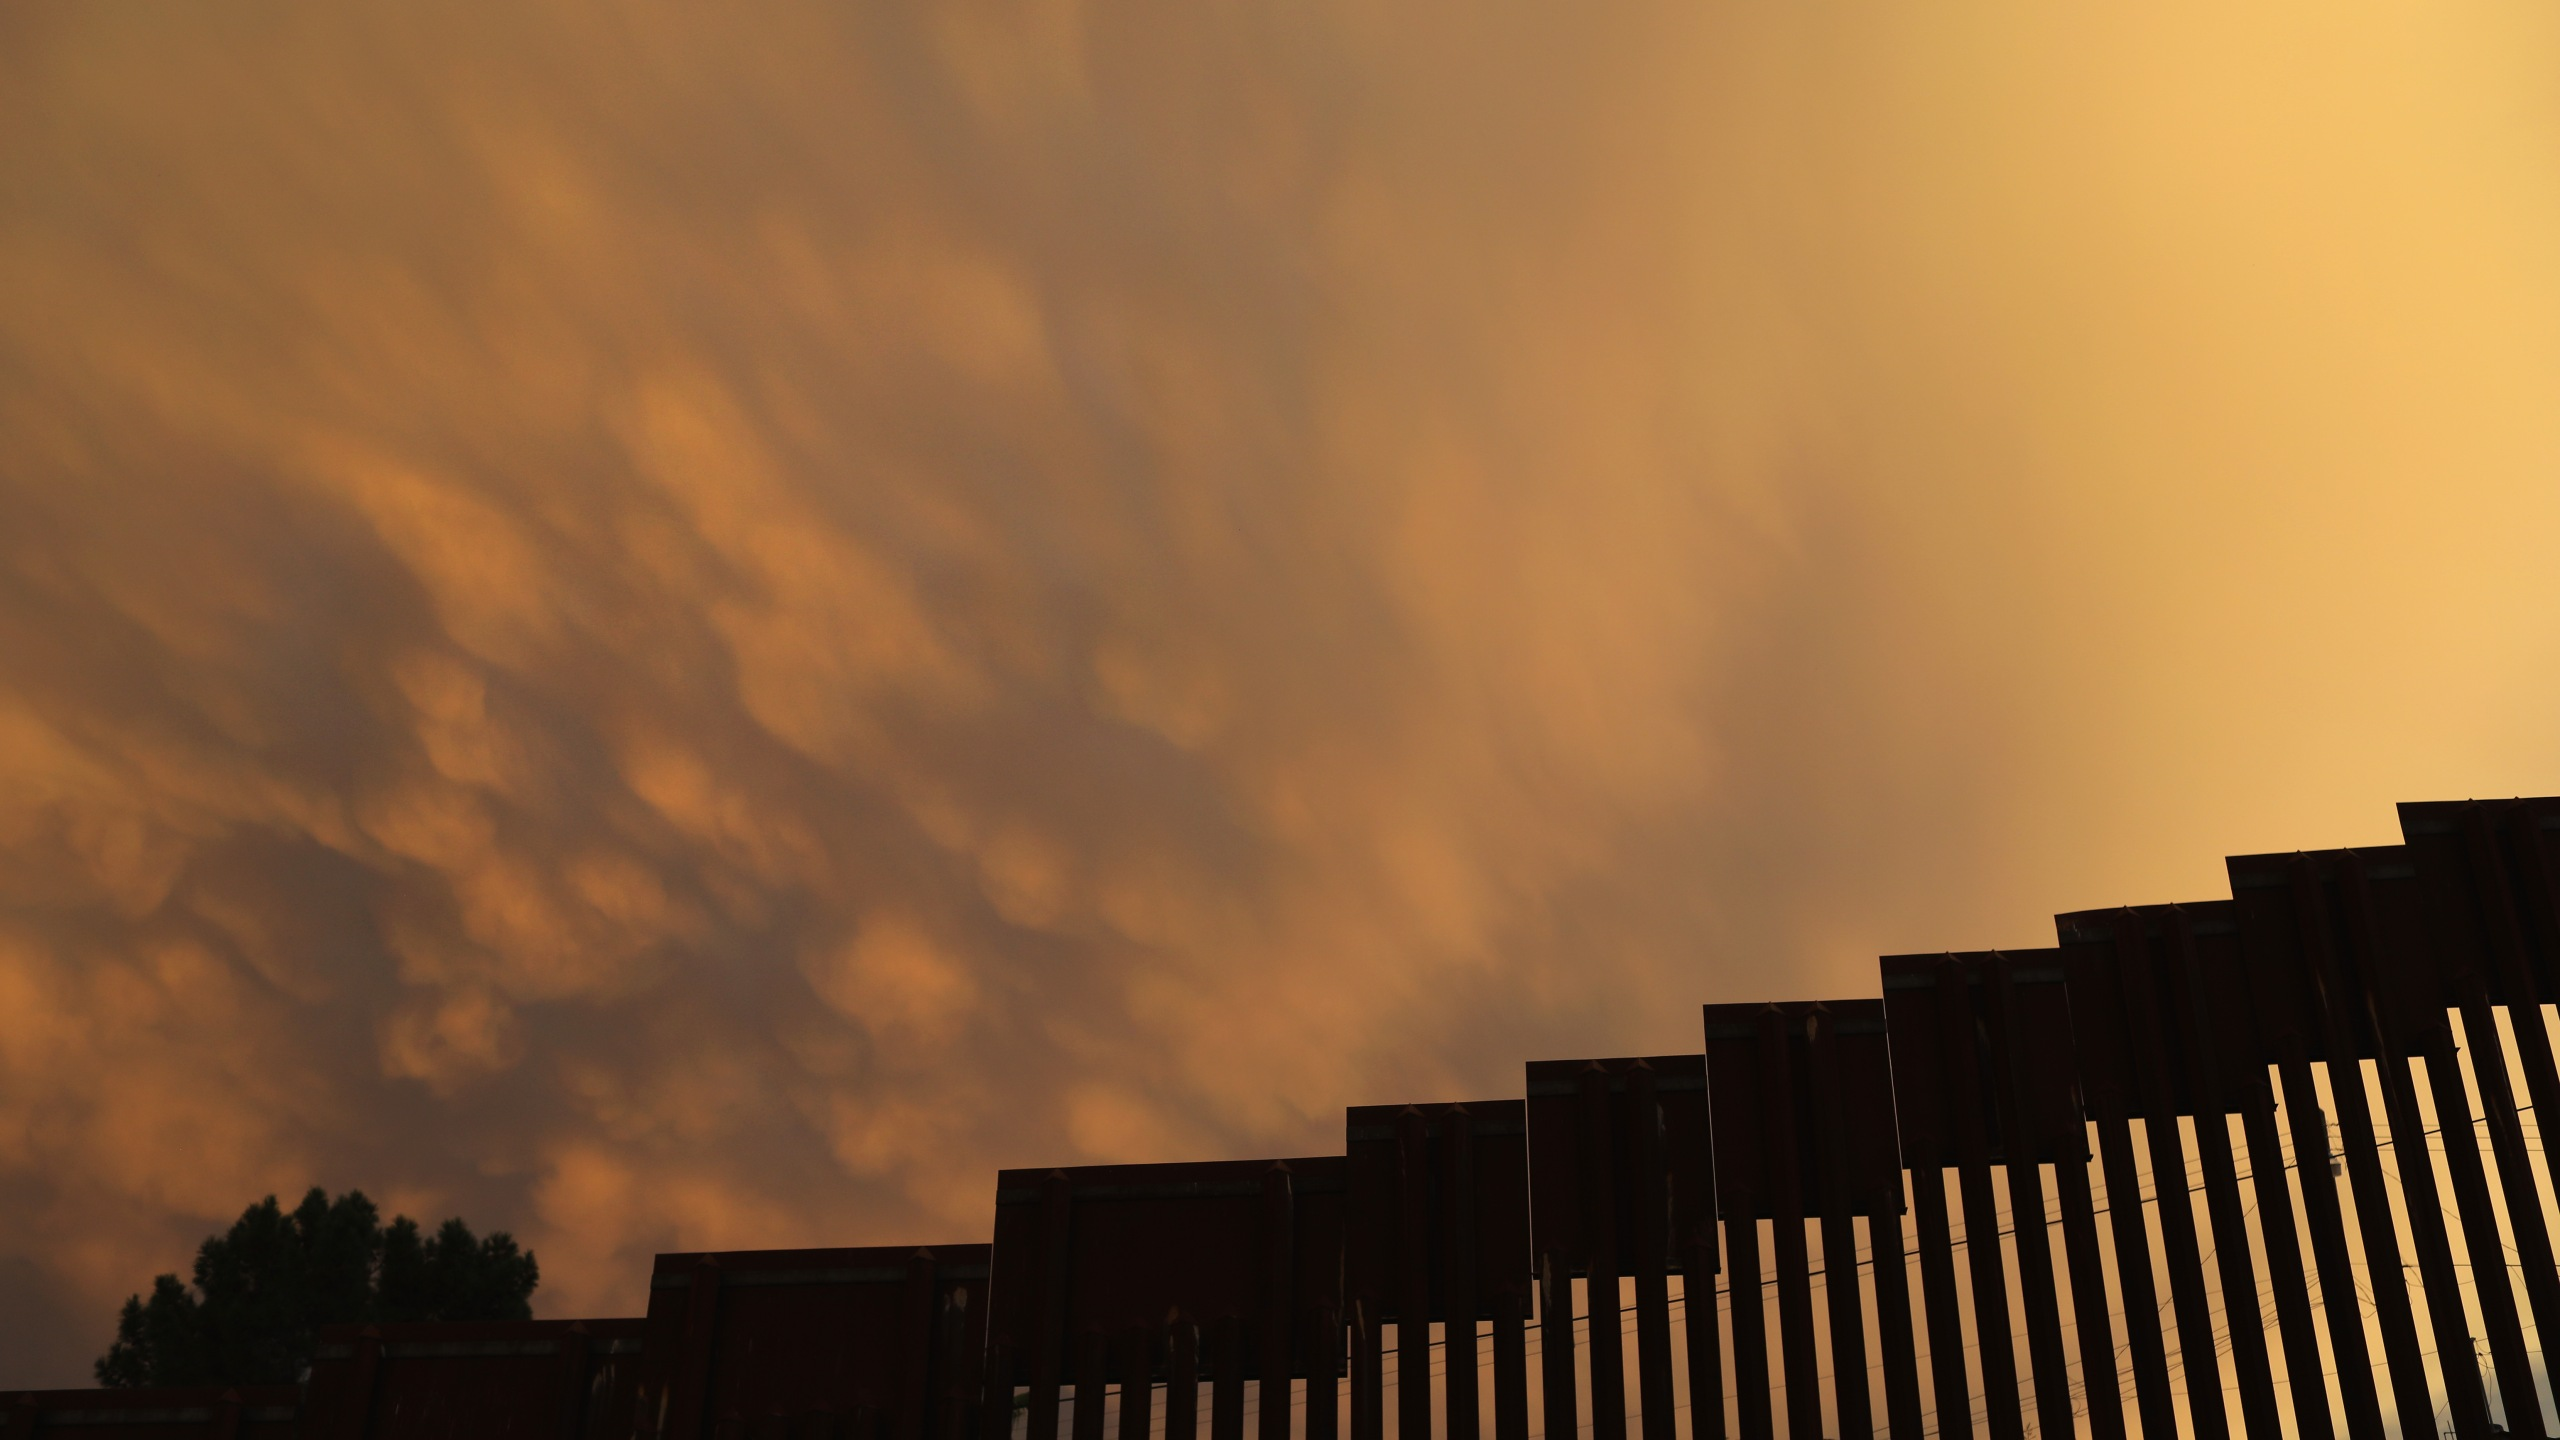 The U.S.-Mexico border fence is seen at sunset on July 22, 2018 in Nogales, Arizona. (Credit: John Moore/Getty Images)